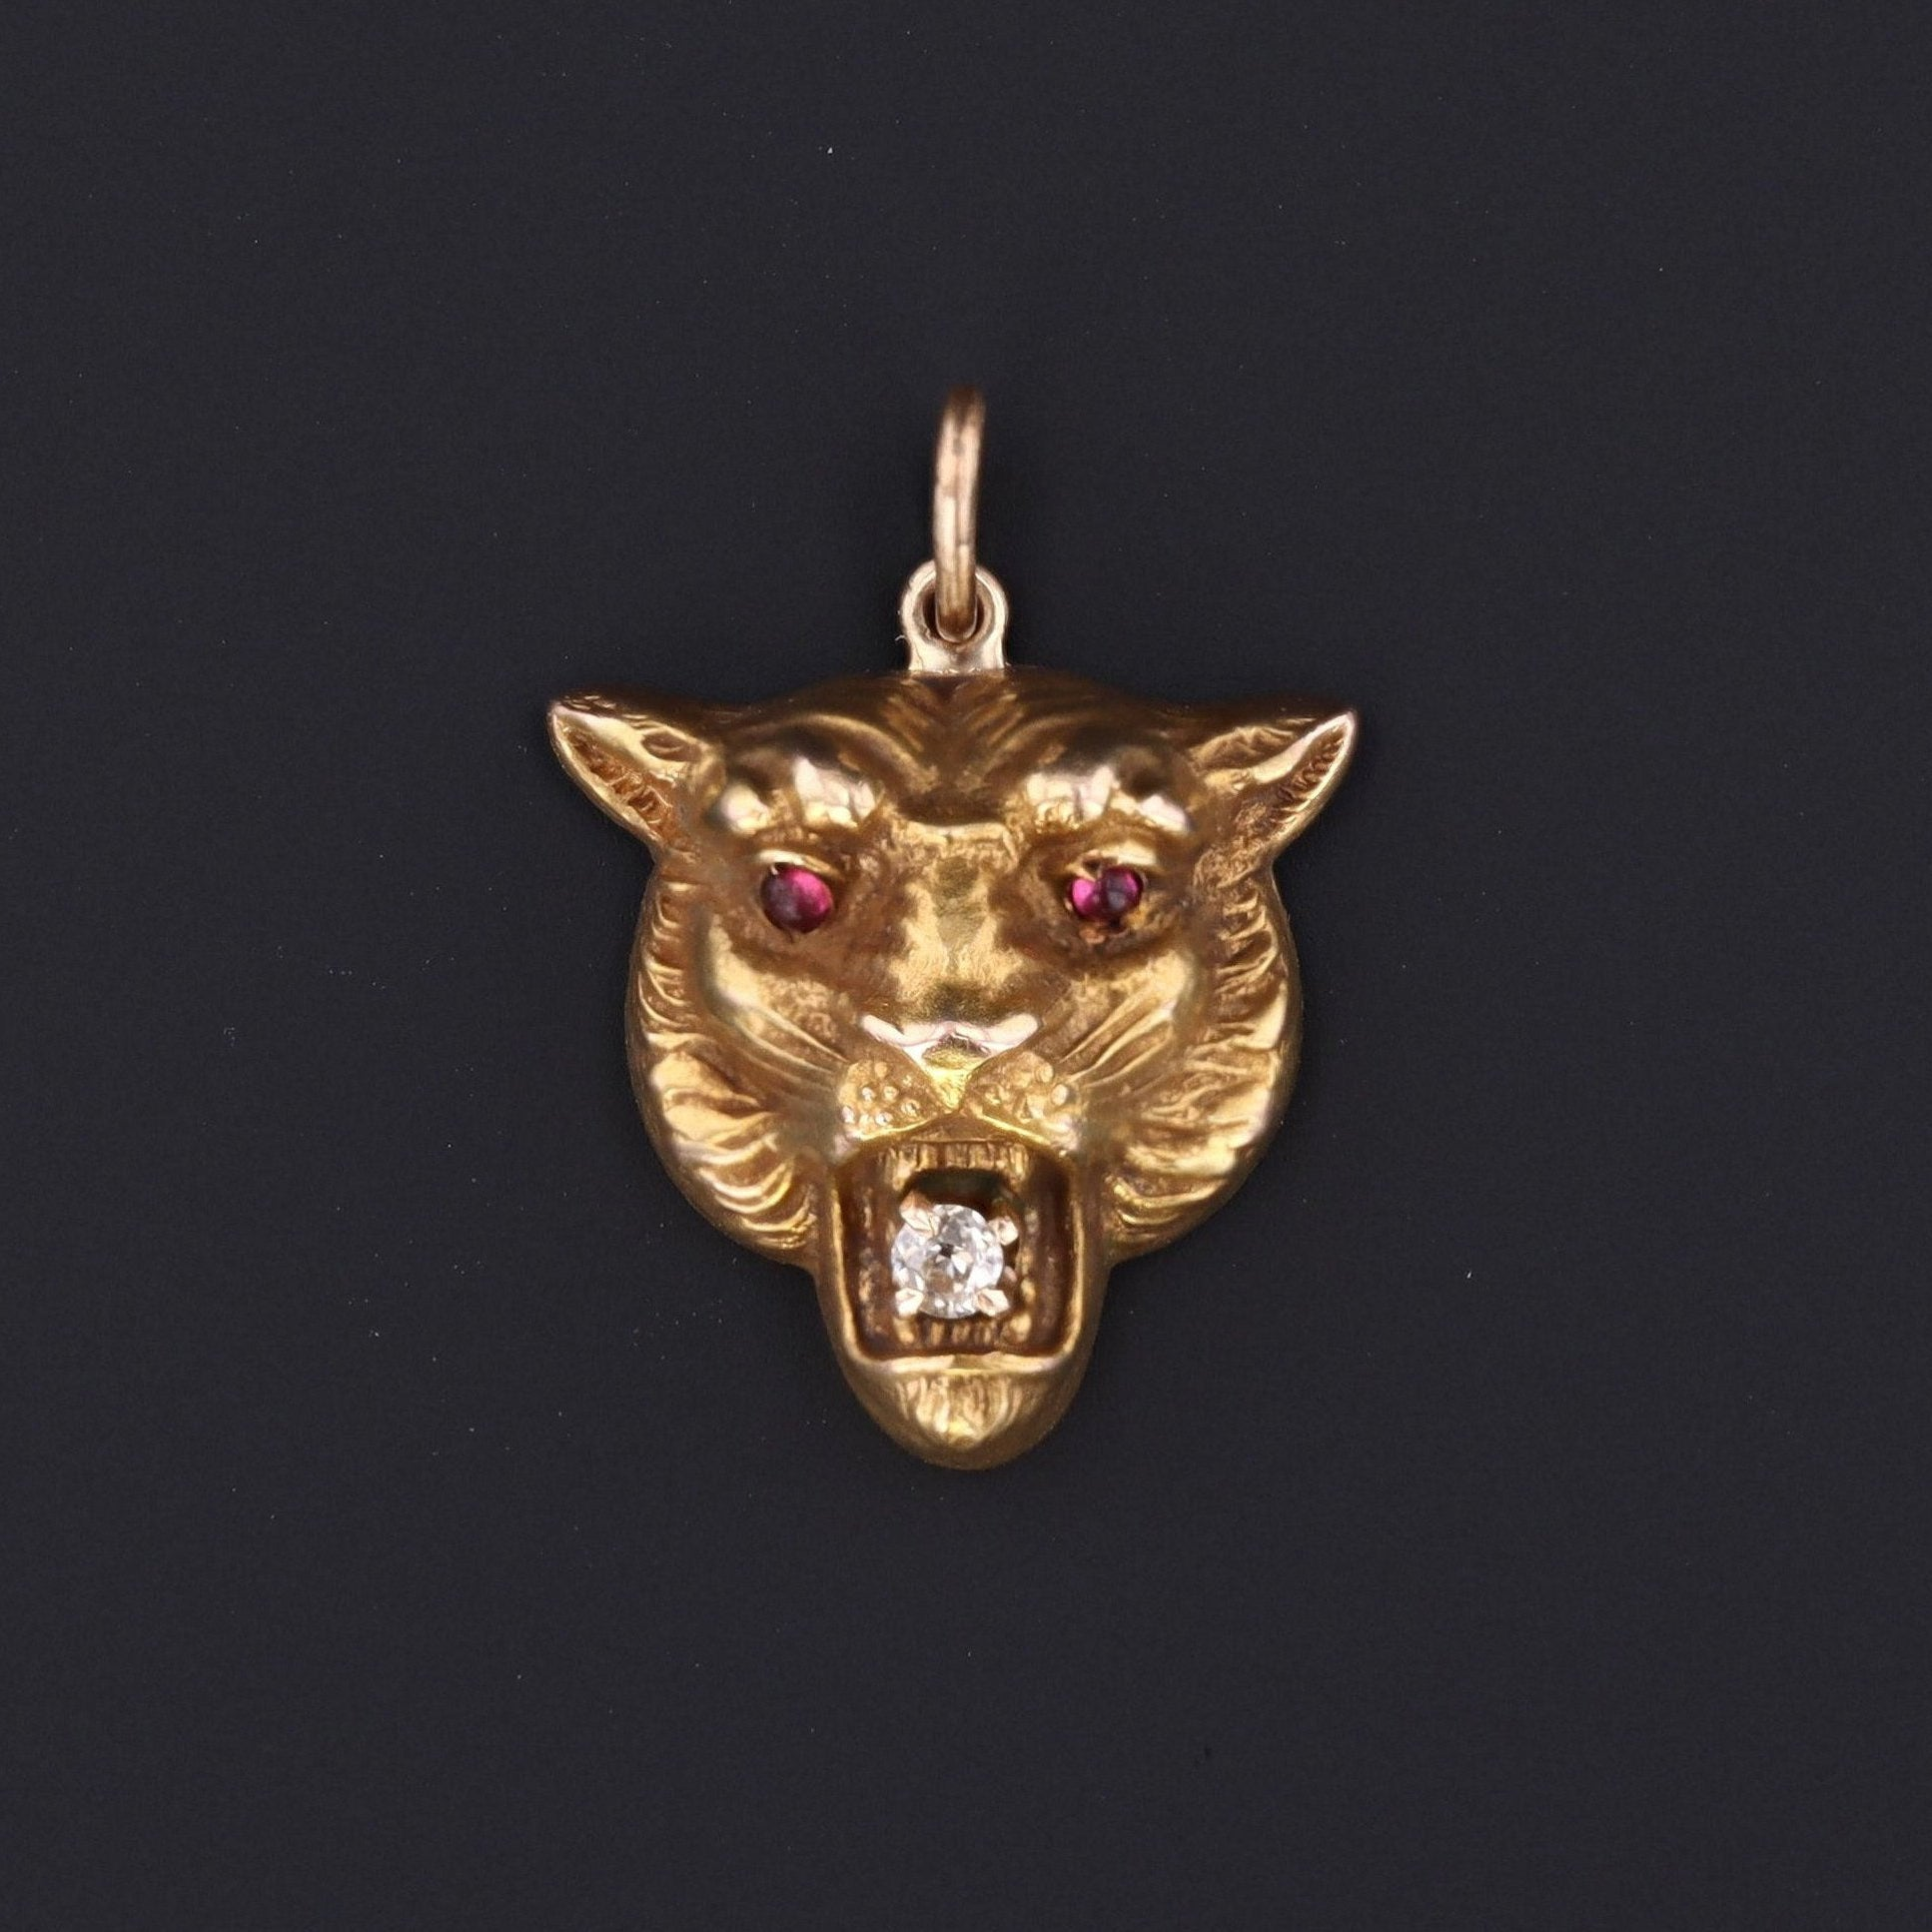 Antique Lion Charm | Pin Conversion | 14k Gold Charm | 14k Gold Lion Charm with Diamond